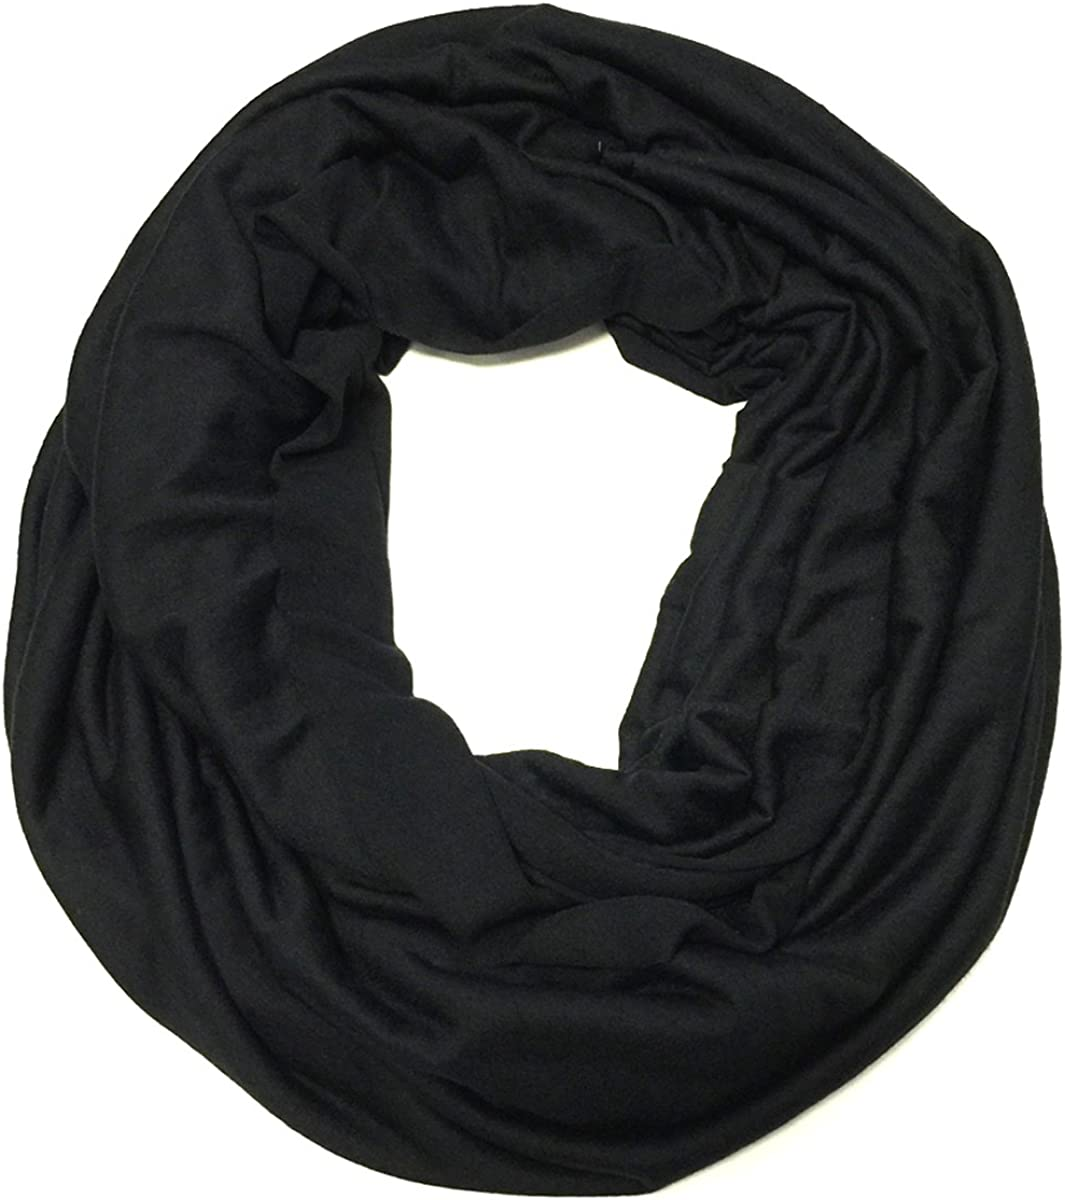 Wrapables Soft Now on Max 58% OFF sale Jersey Scarf Infinity Knit